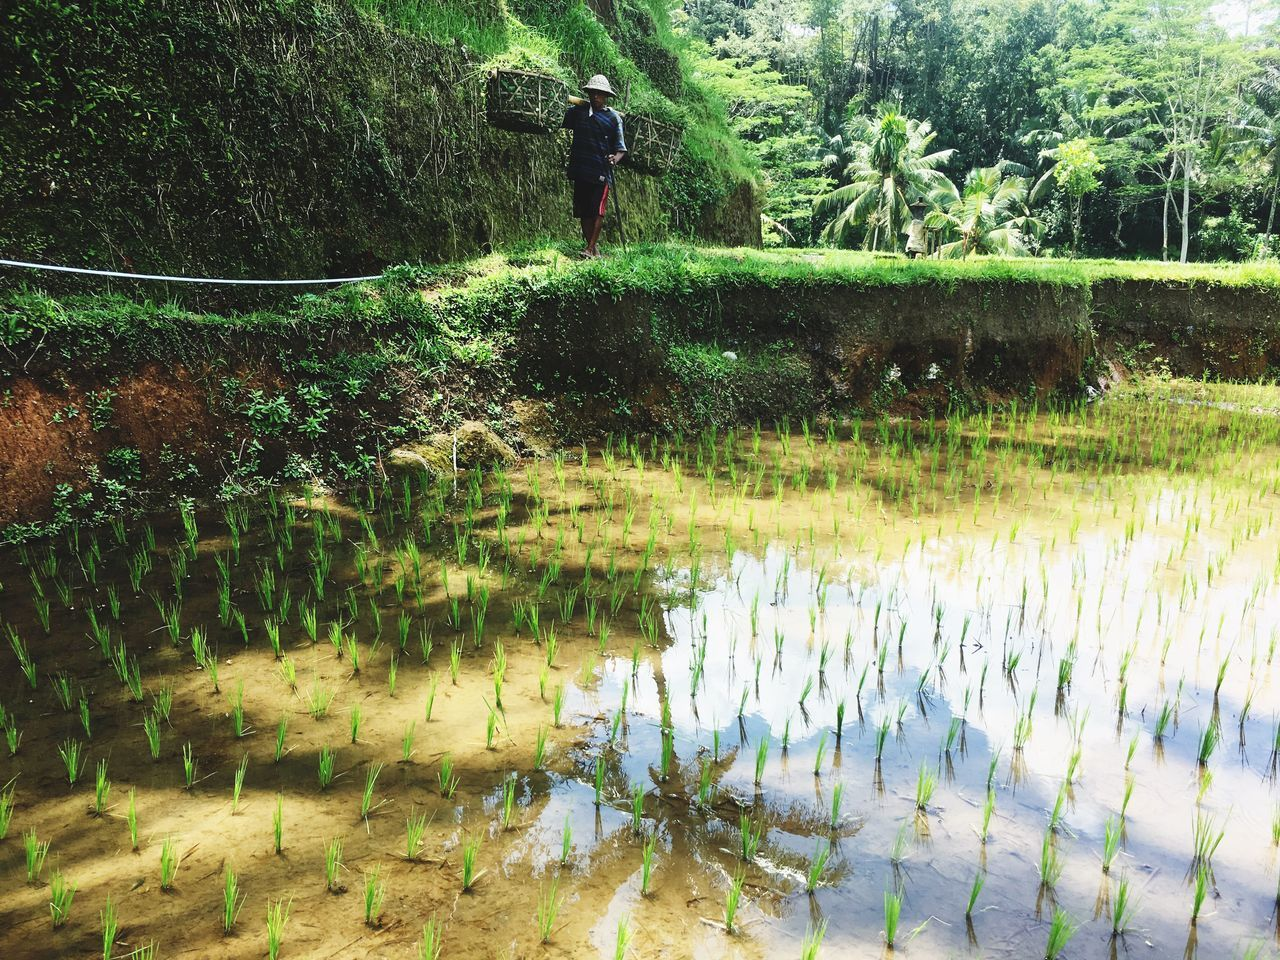 INDONESIA Ubud Nature Rice Field Plant Worker Farmer Beauty In Nature Outdoors One Person Rice Terraces Ricefield Reflection Reflections EyeEm Nature Lover EyeEm Gallery Water Nature Tree Plant Hard Work Sun Culture